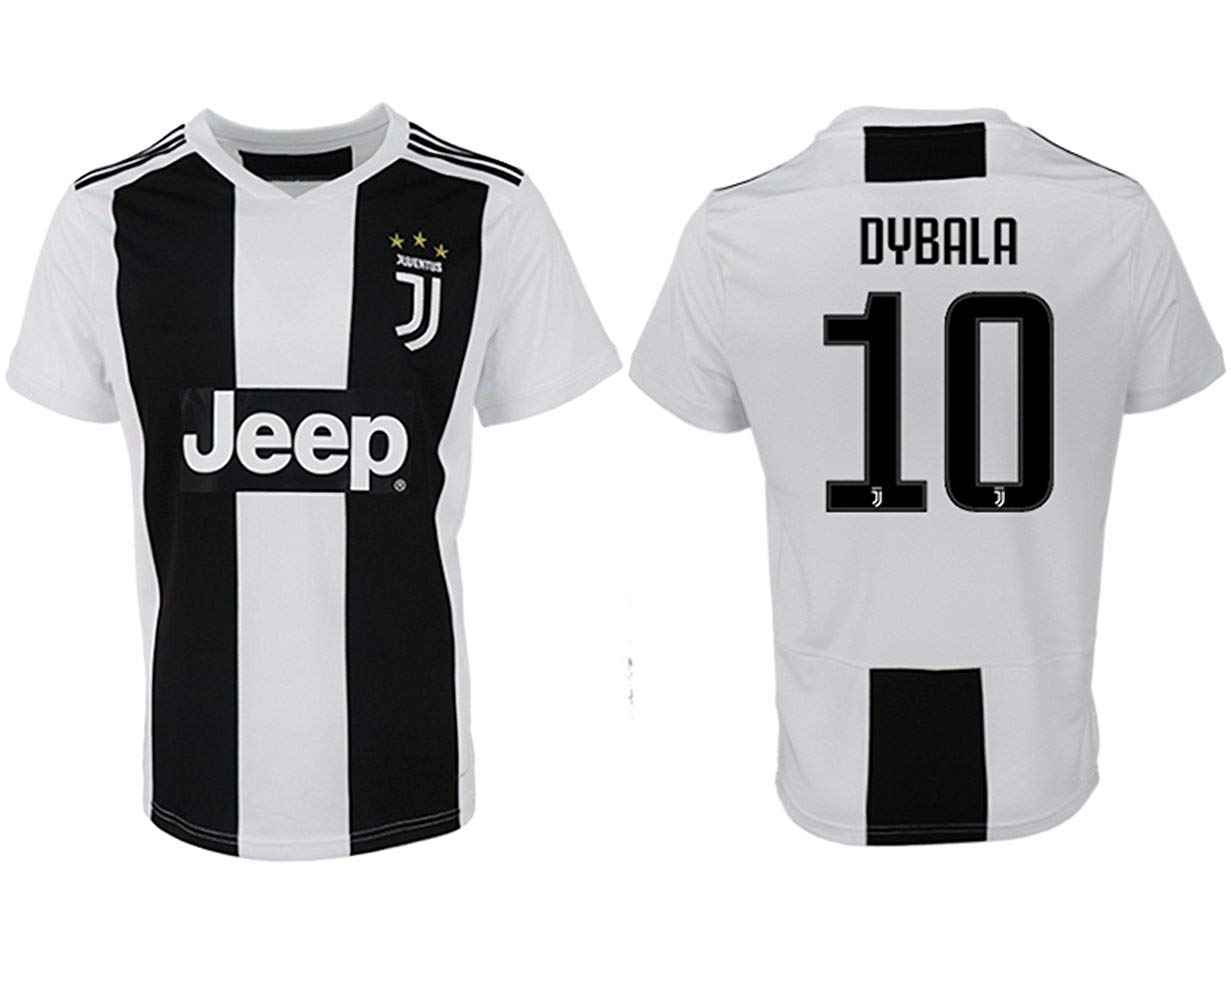 purchase cheap 4a35b 76e8a Cheap Jersey Juventus Pink, find Jersey Juventus Pink deals ...